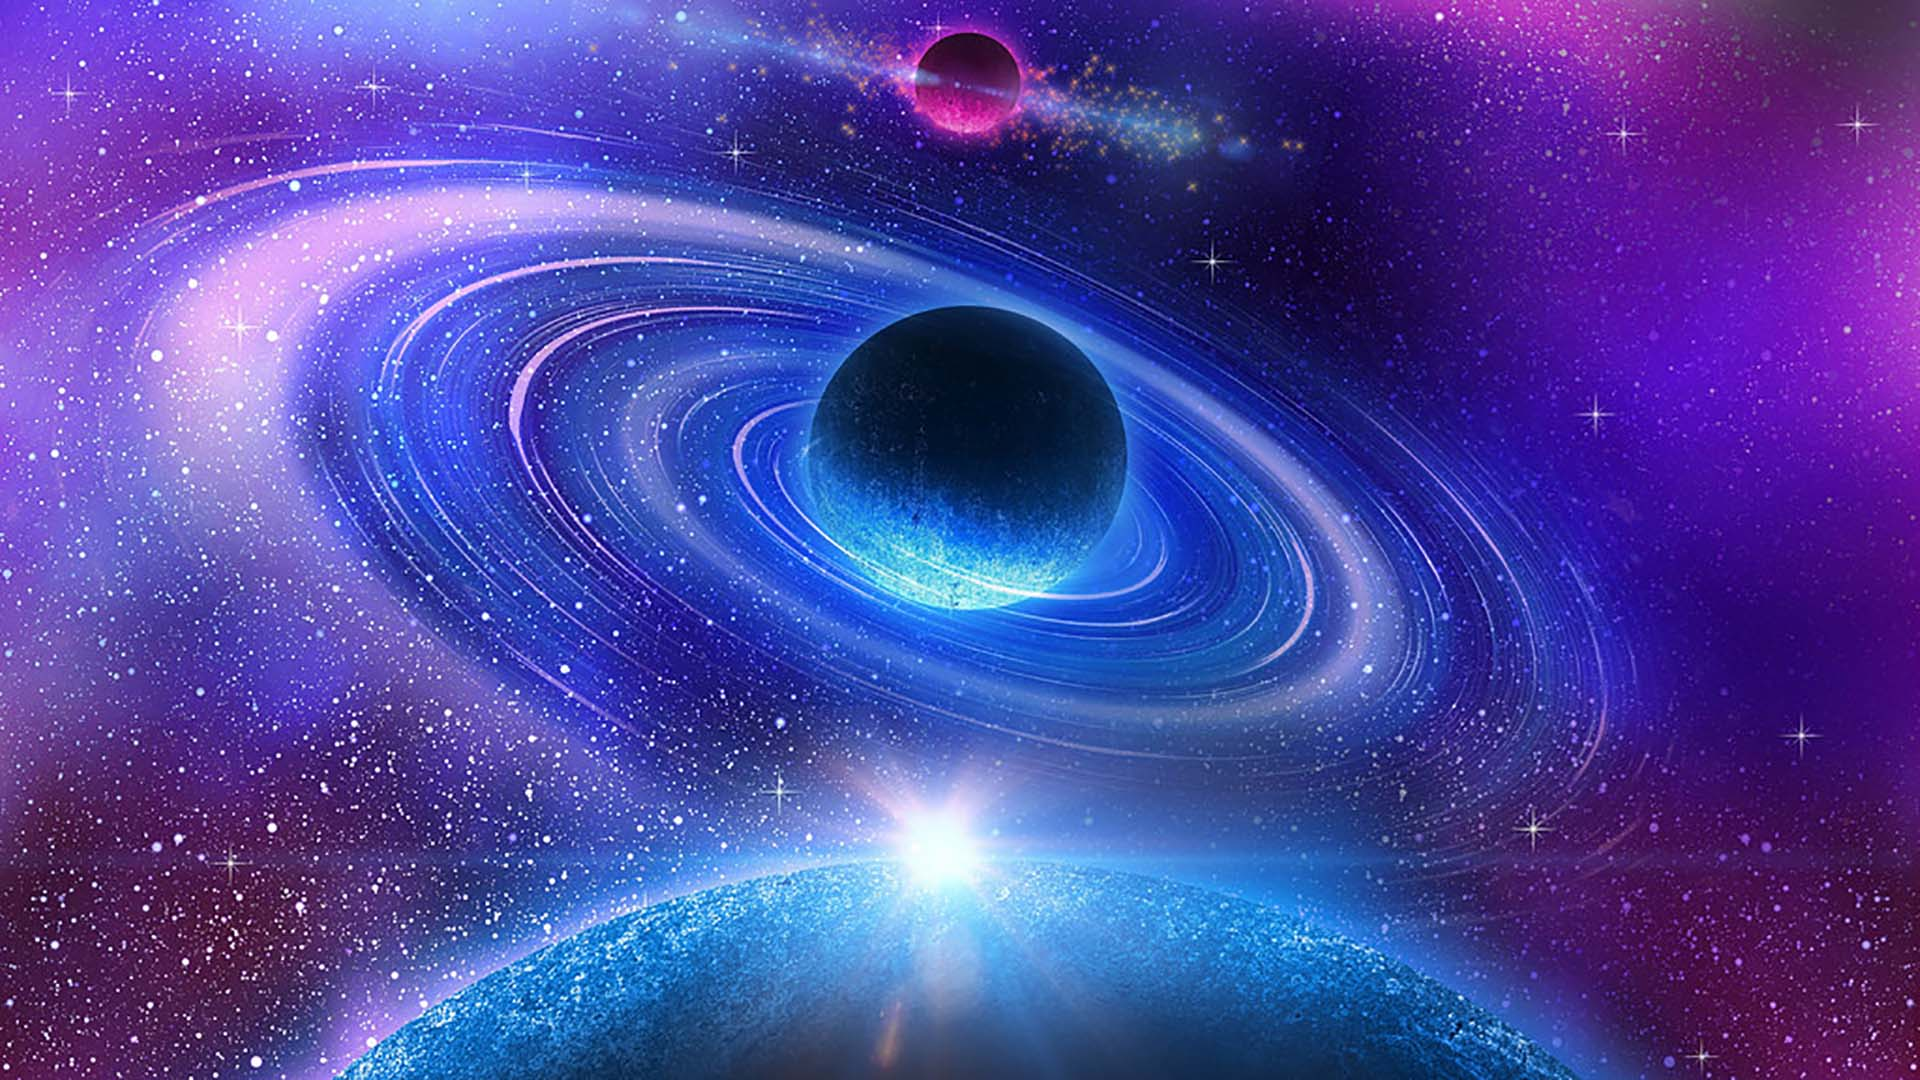 50 Cool Galaxy Wallpapers On Designsmag